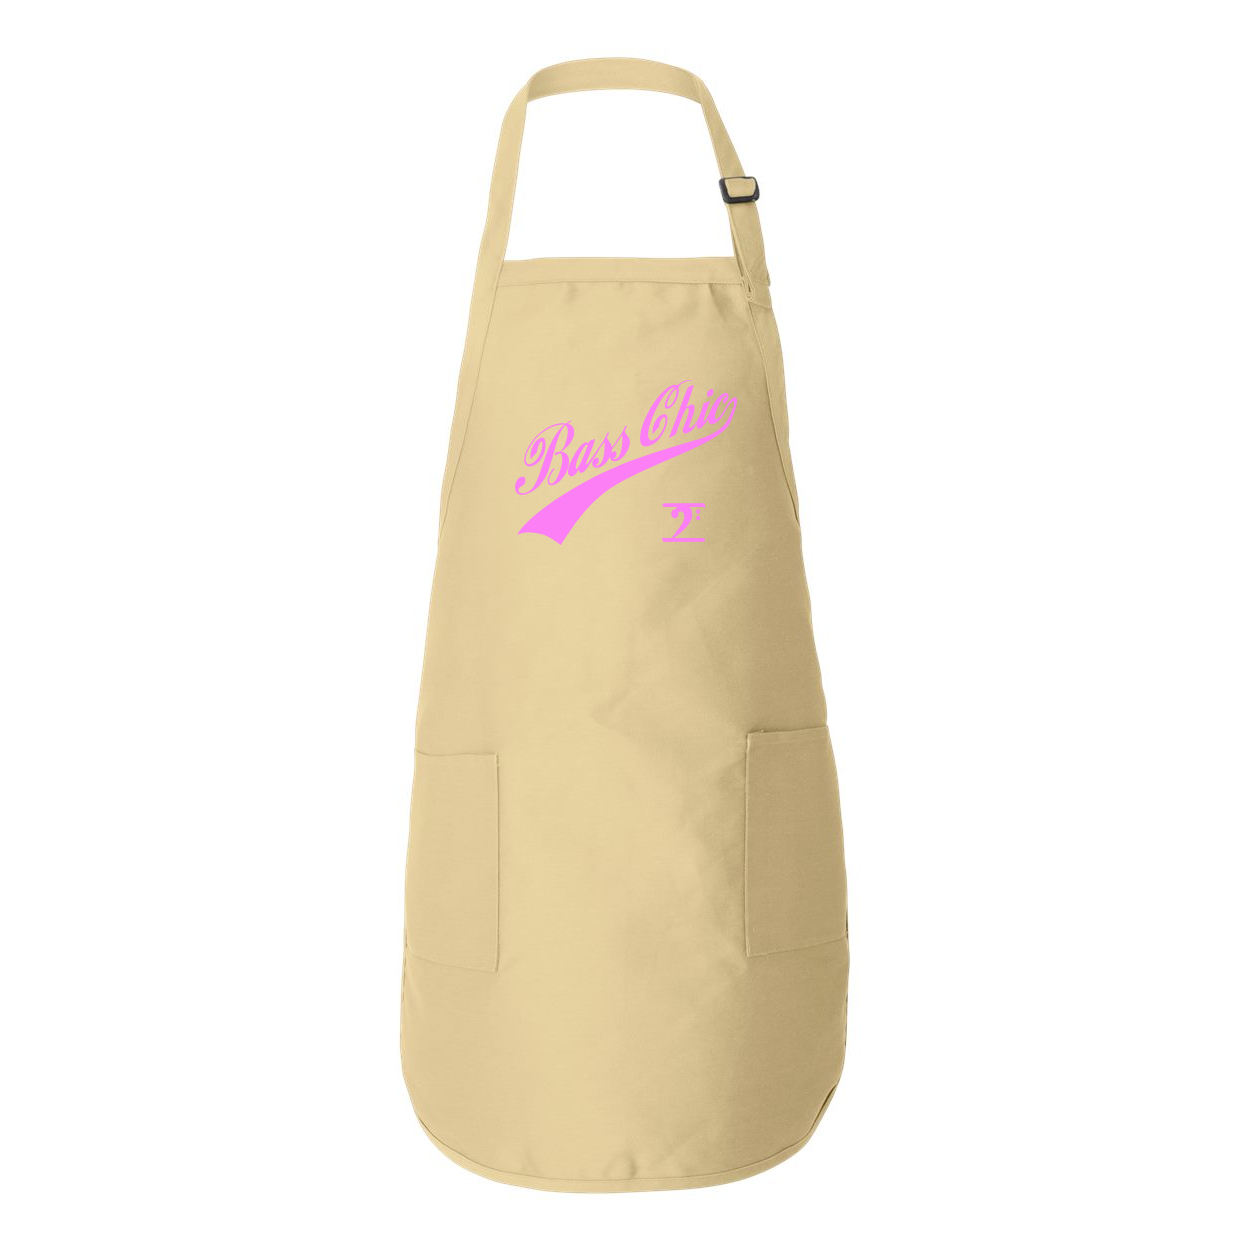 BASS CHIC w/TAIL Full-Length Apron with Pockets - Lathon Bass Wear